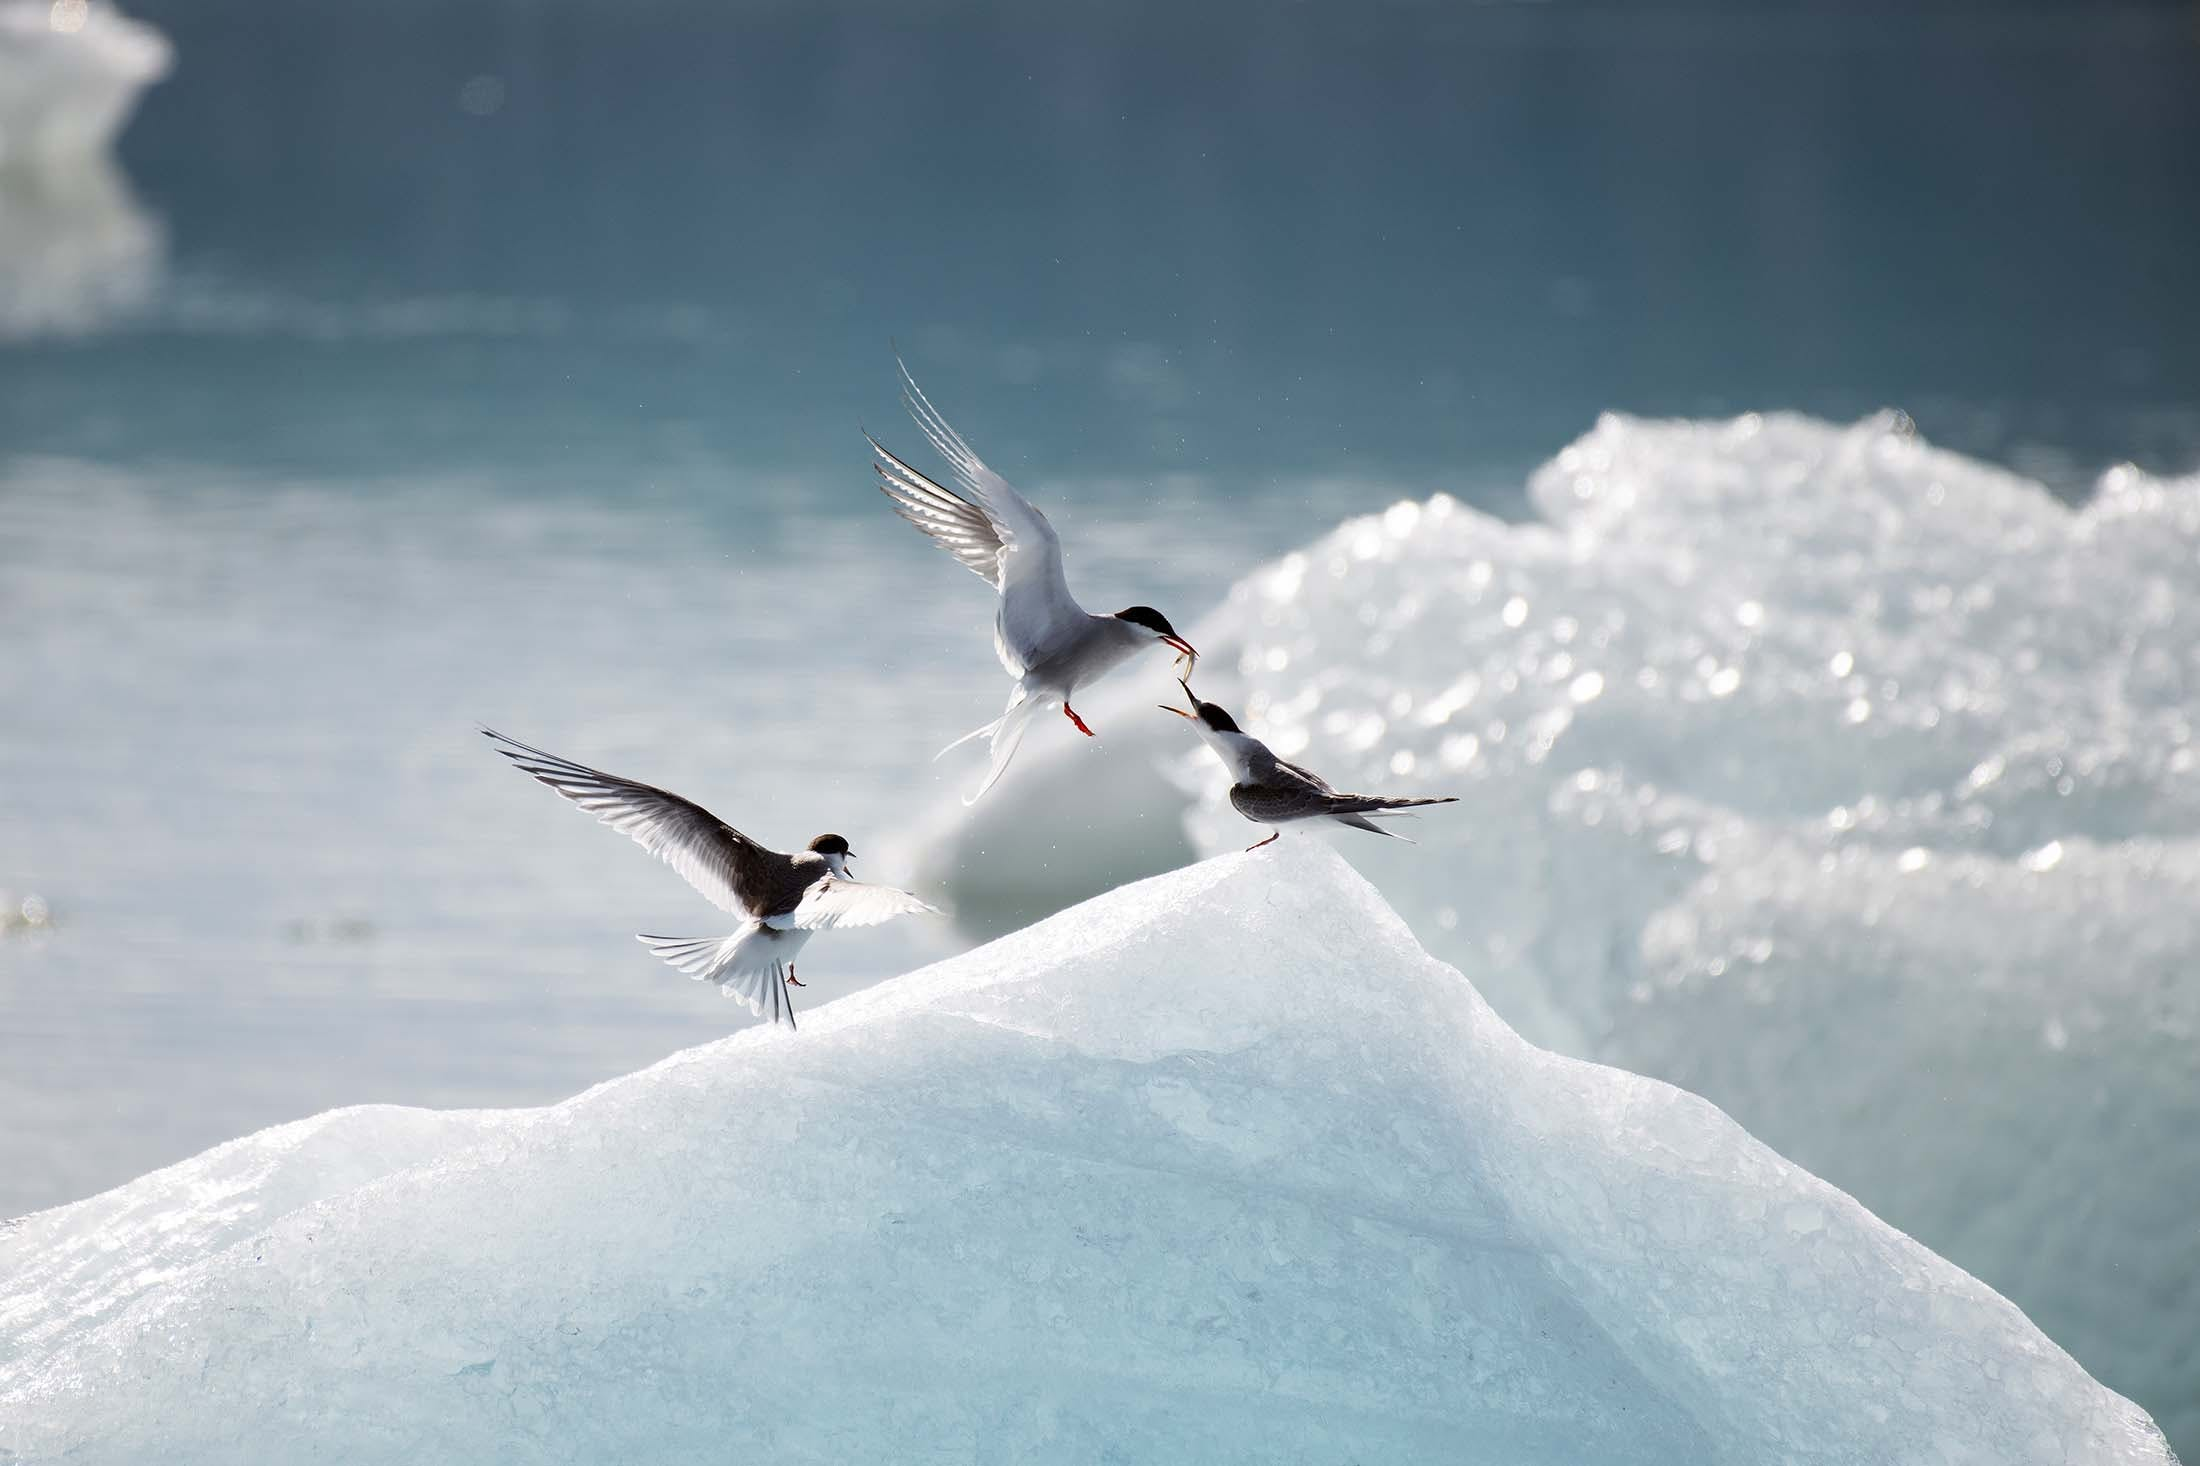 Arctic Tern feeds its young in Glacier Lagoon, Iceland